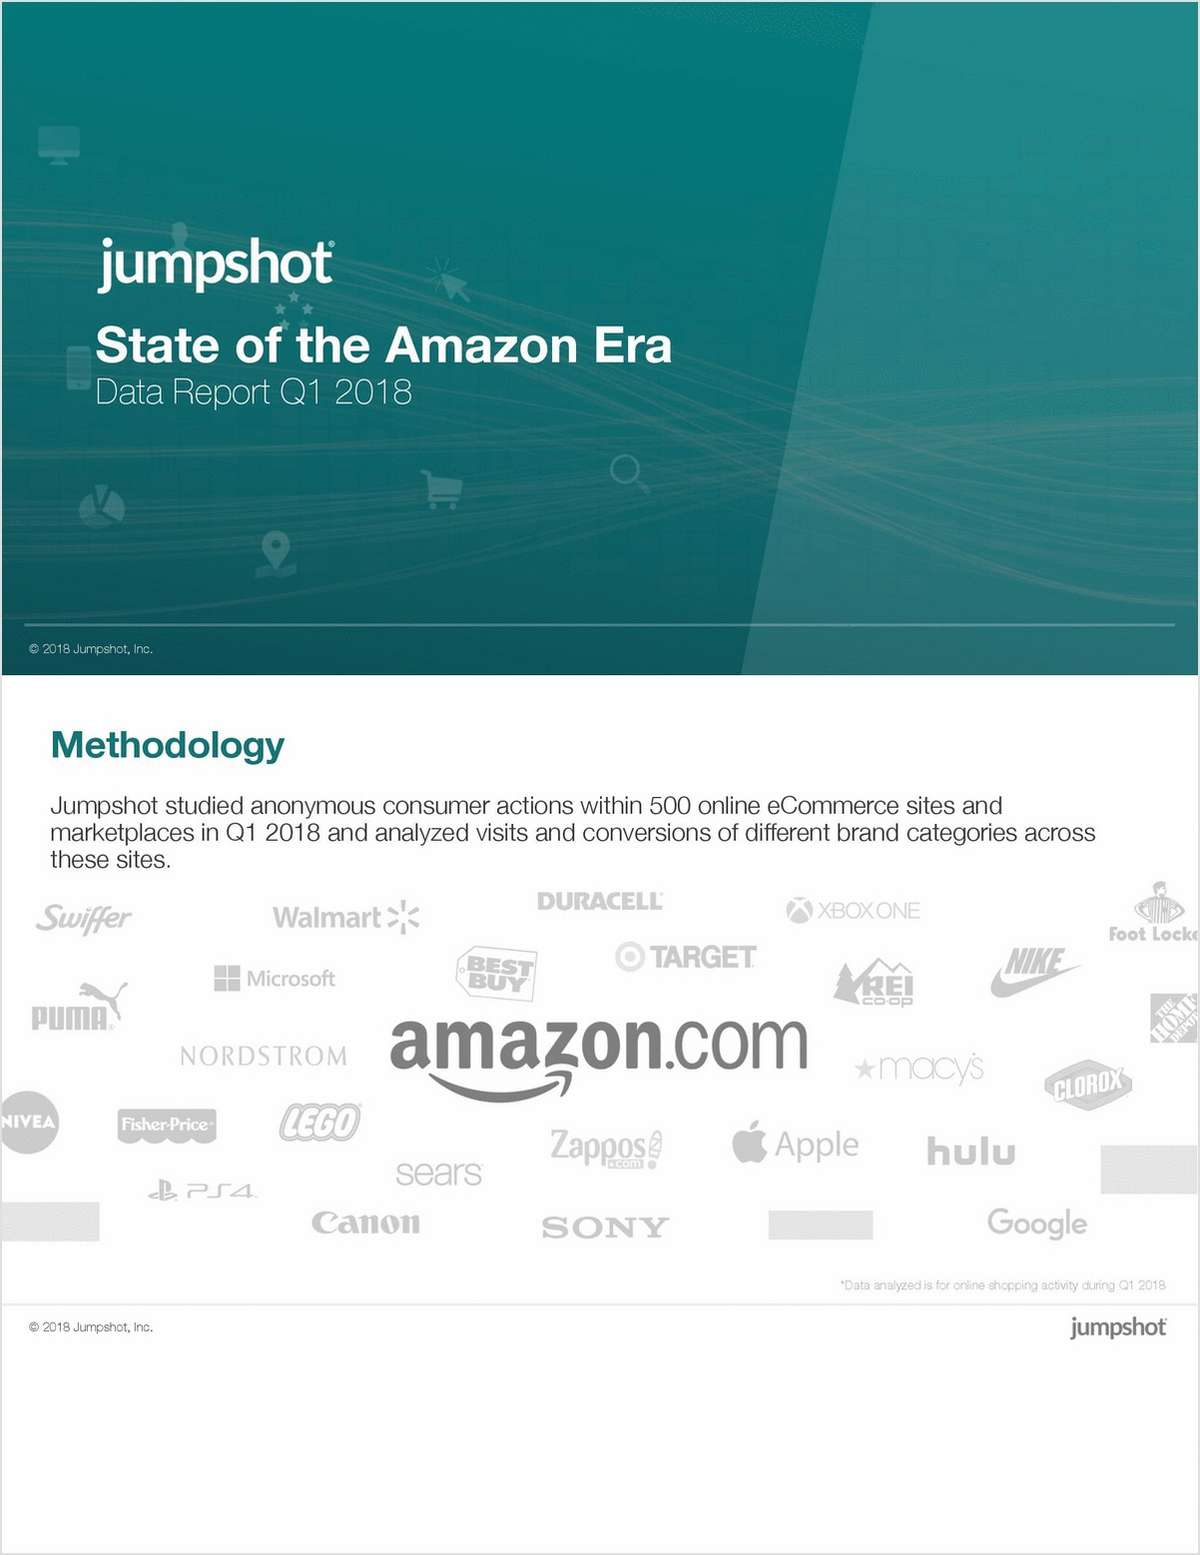 State of the Amazon Era Data Report